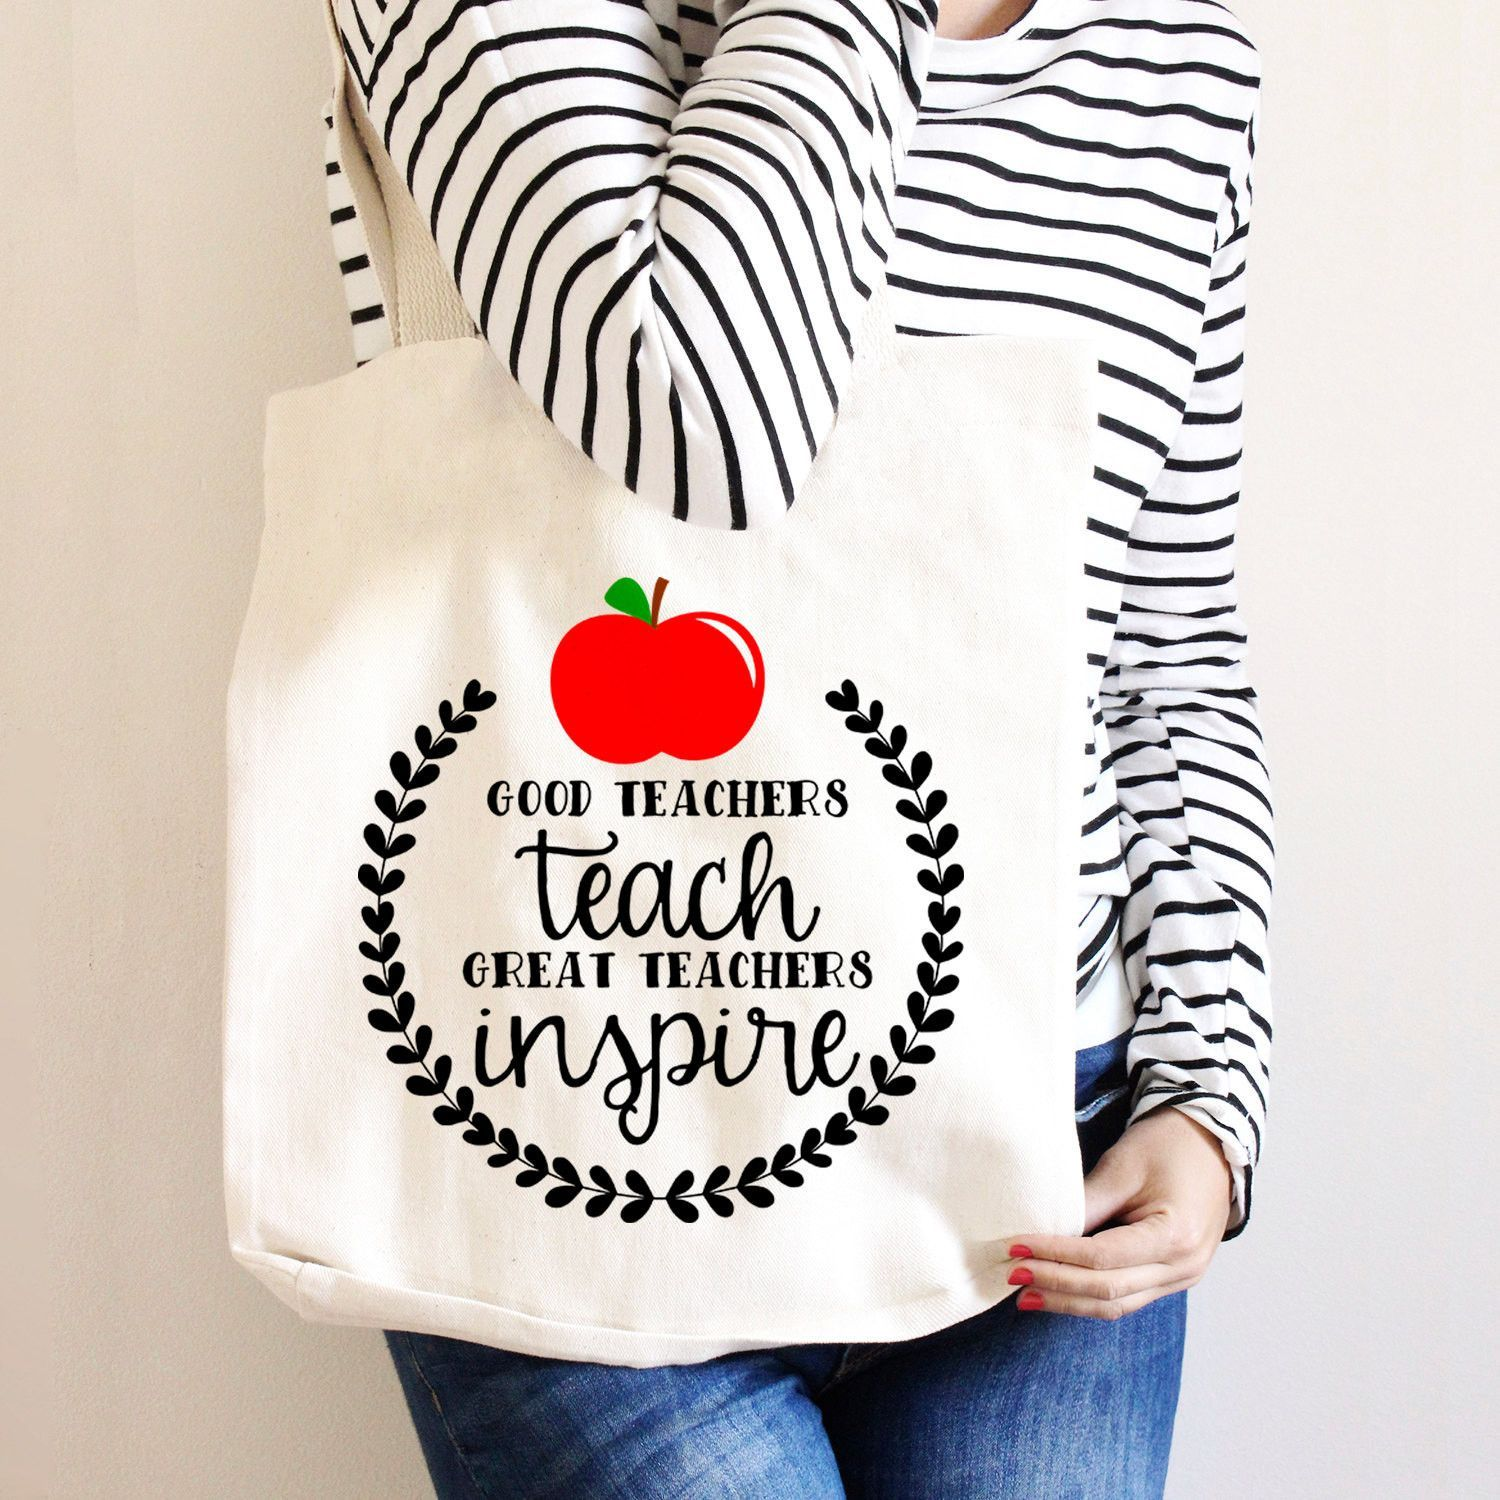 PERSONALISED Tote Bag Thank You Teacher School Gift 2019 World/'s Best Natural